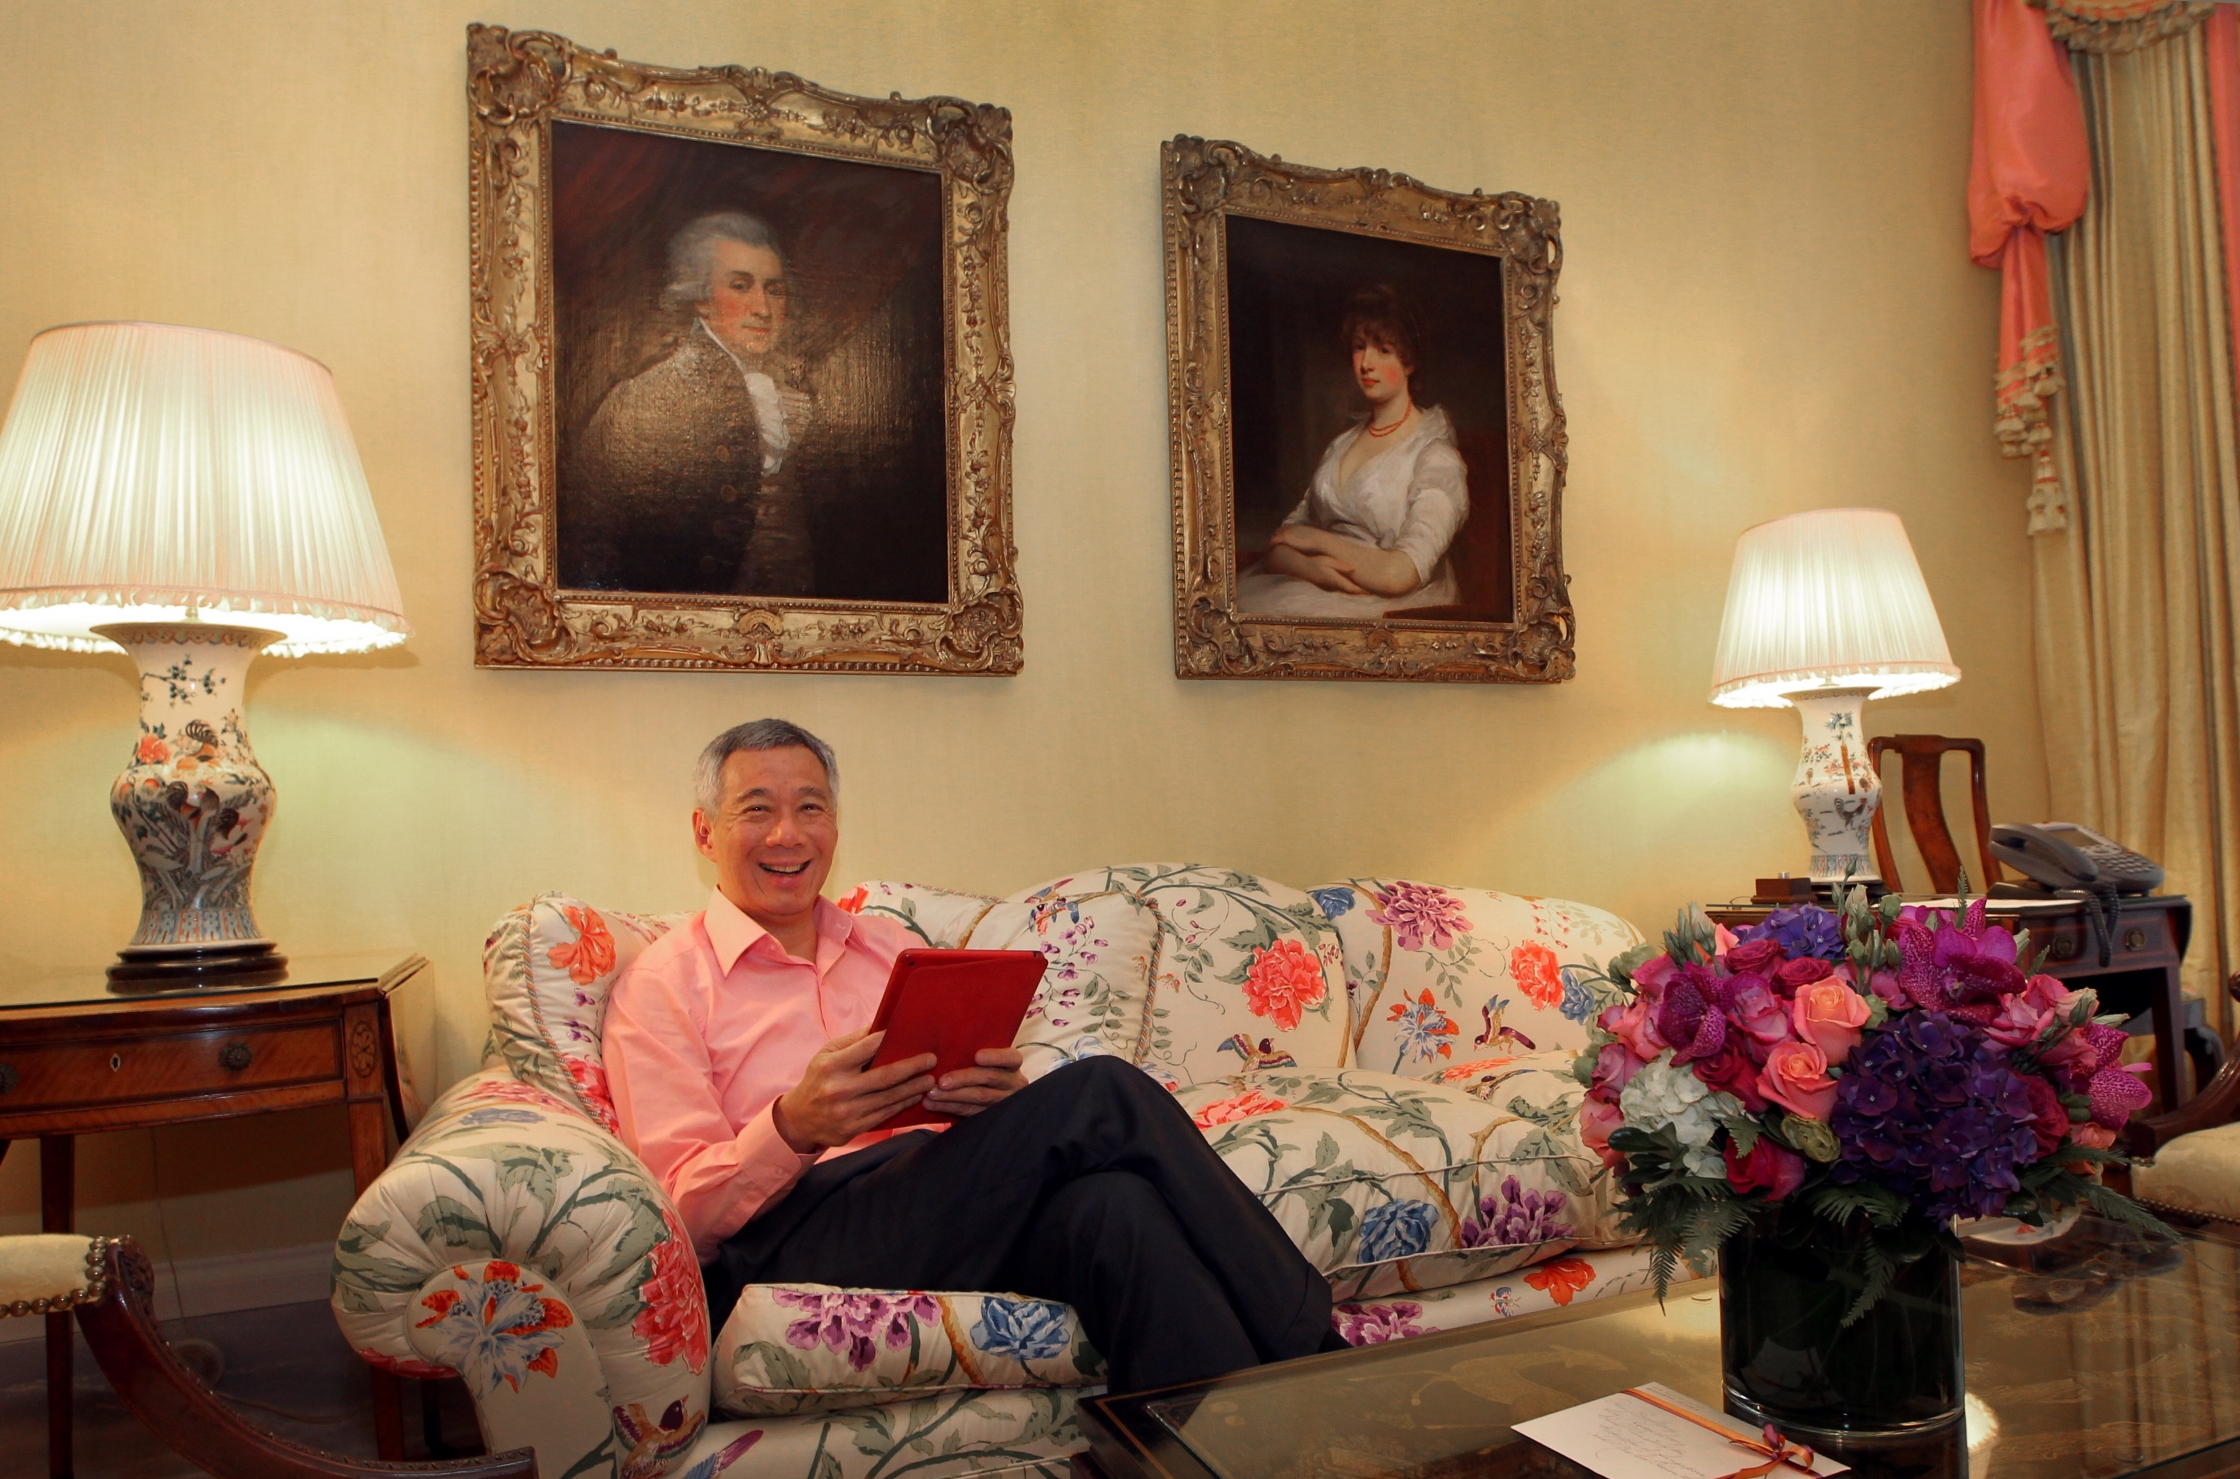 Prime Minister Lee at the Blair House